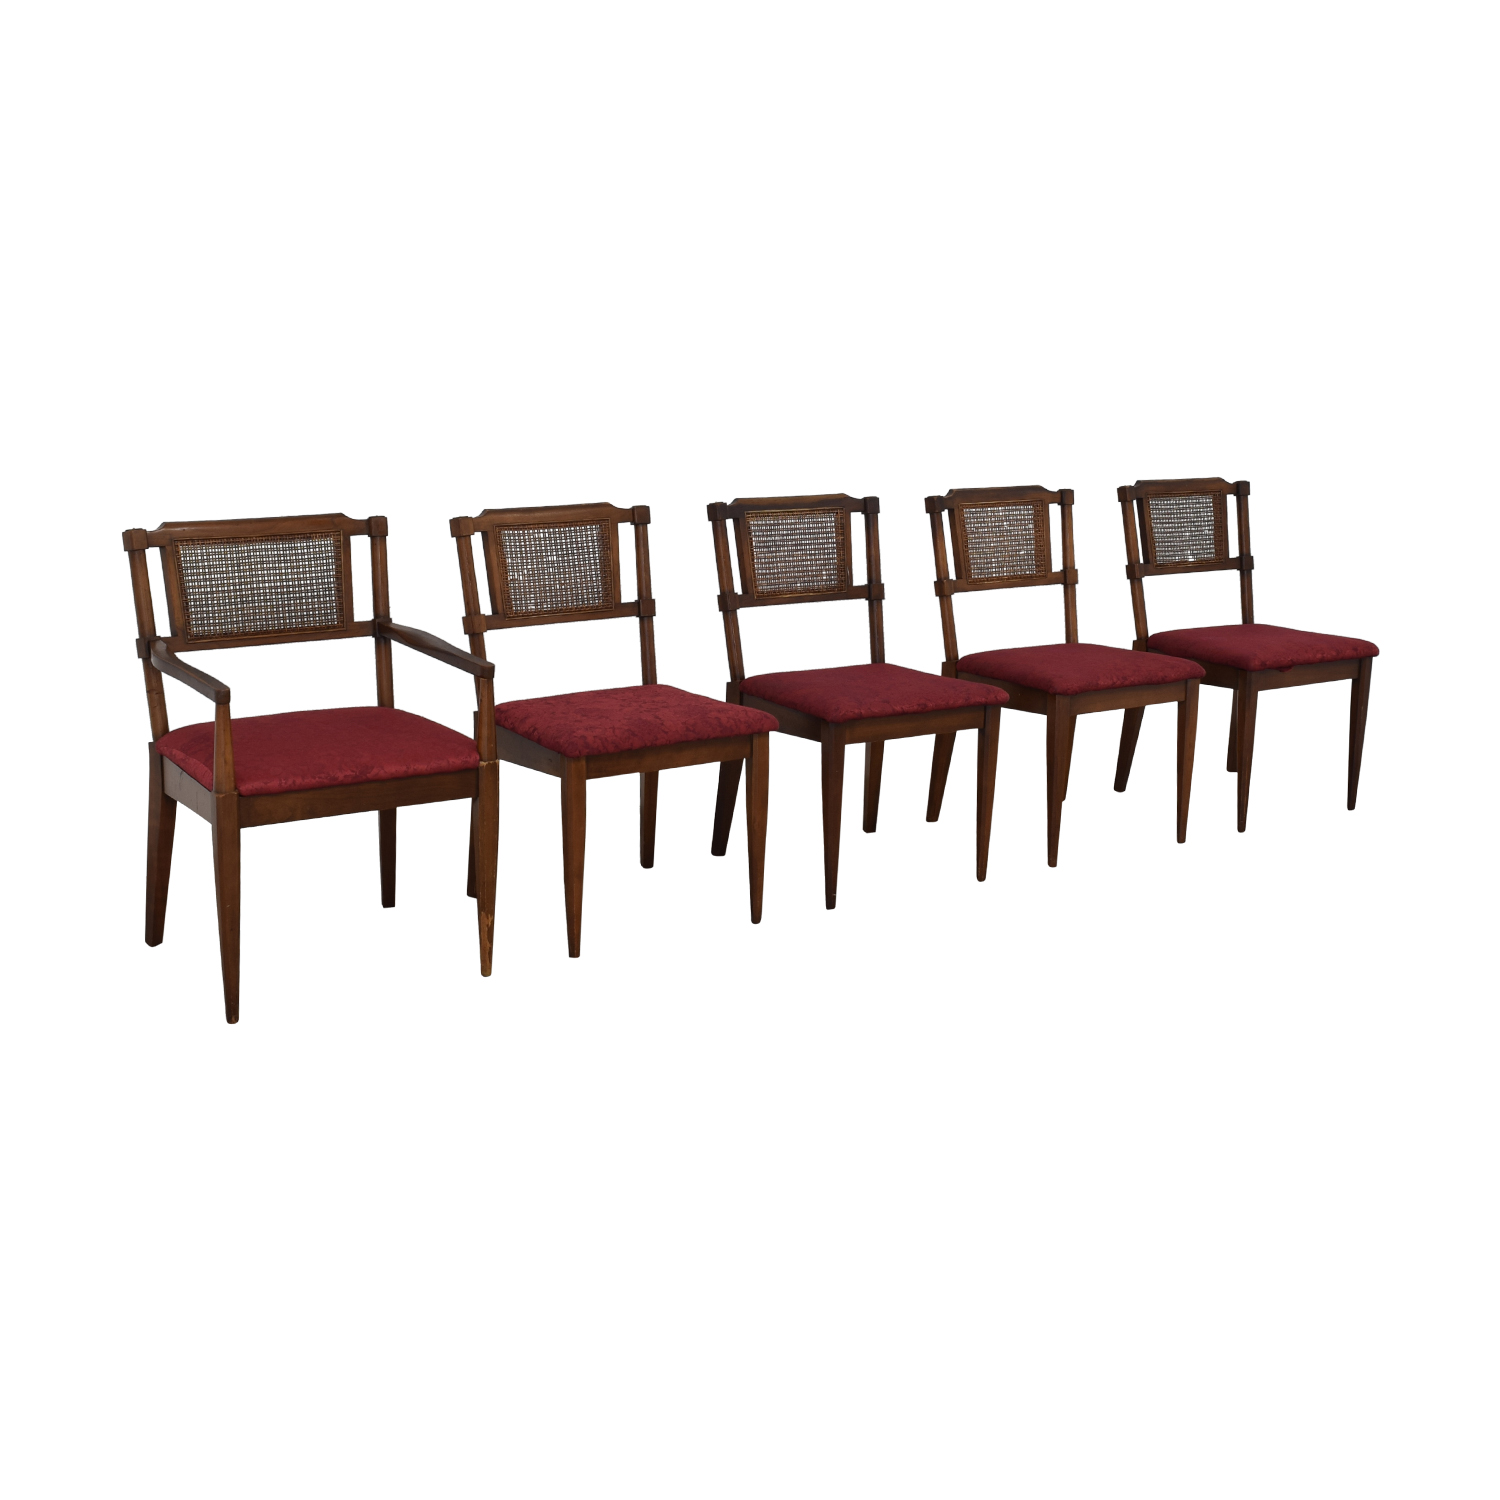 R & E Gordon Furniture Co. R & E Gordon Furniture Co. Dining Chairs for sale